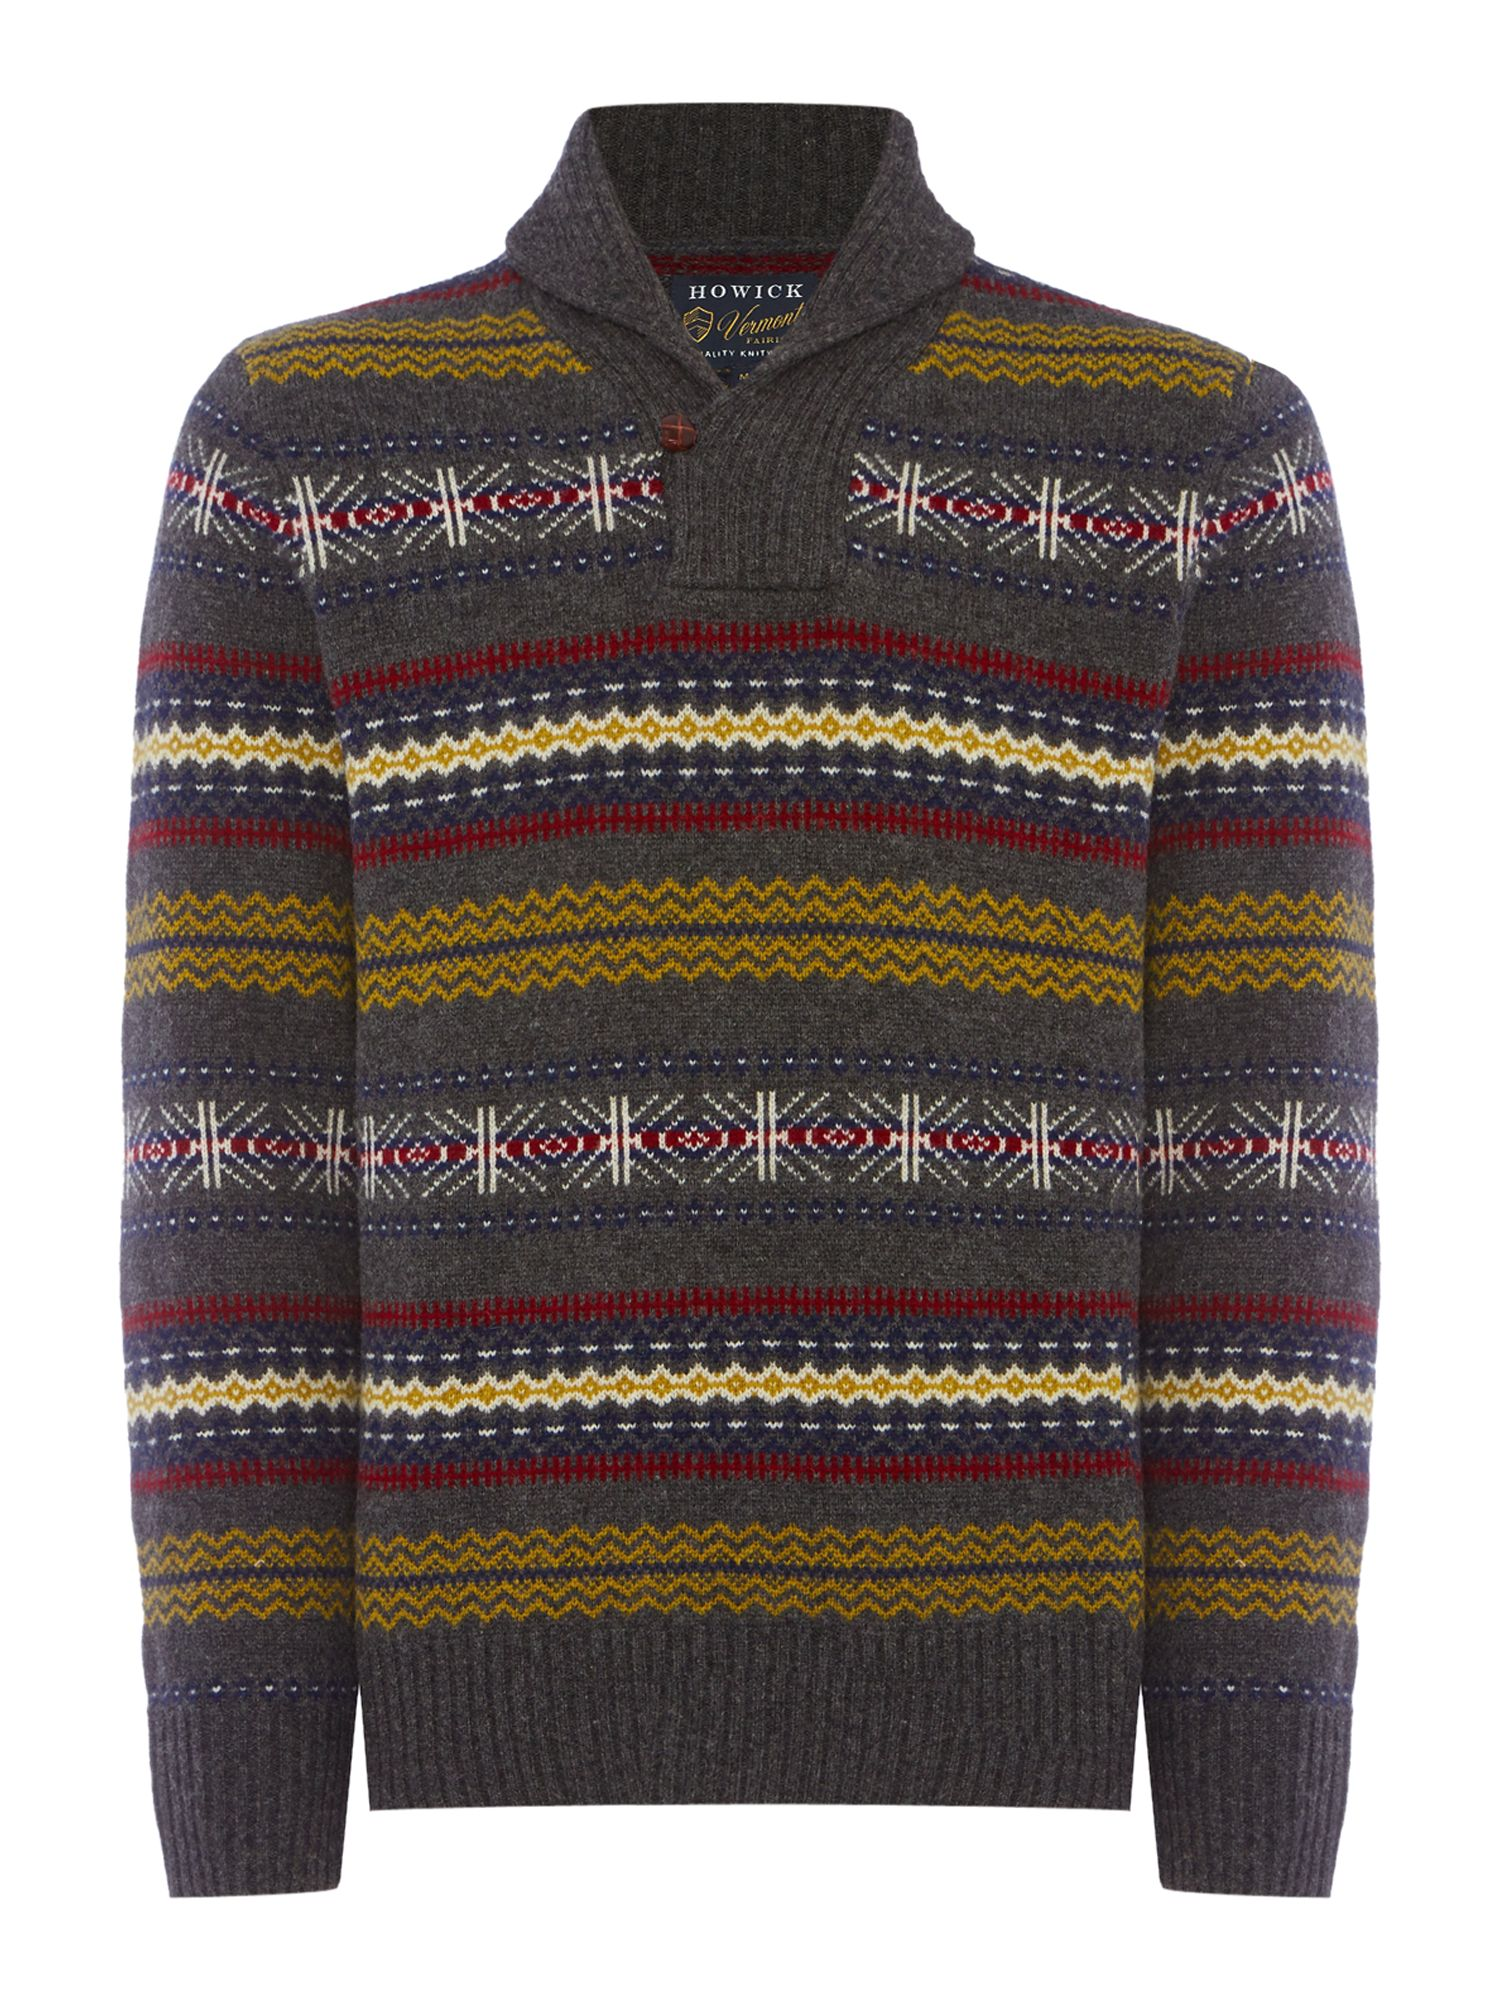 Men's Vintage Style Sweaters – 1920s to 1960s Mens Howick North Star Fair Isle Shawl Neck Jumper Charcoal £38.50 AT vintagedancer.com